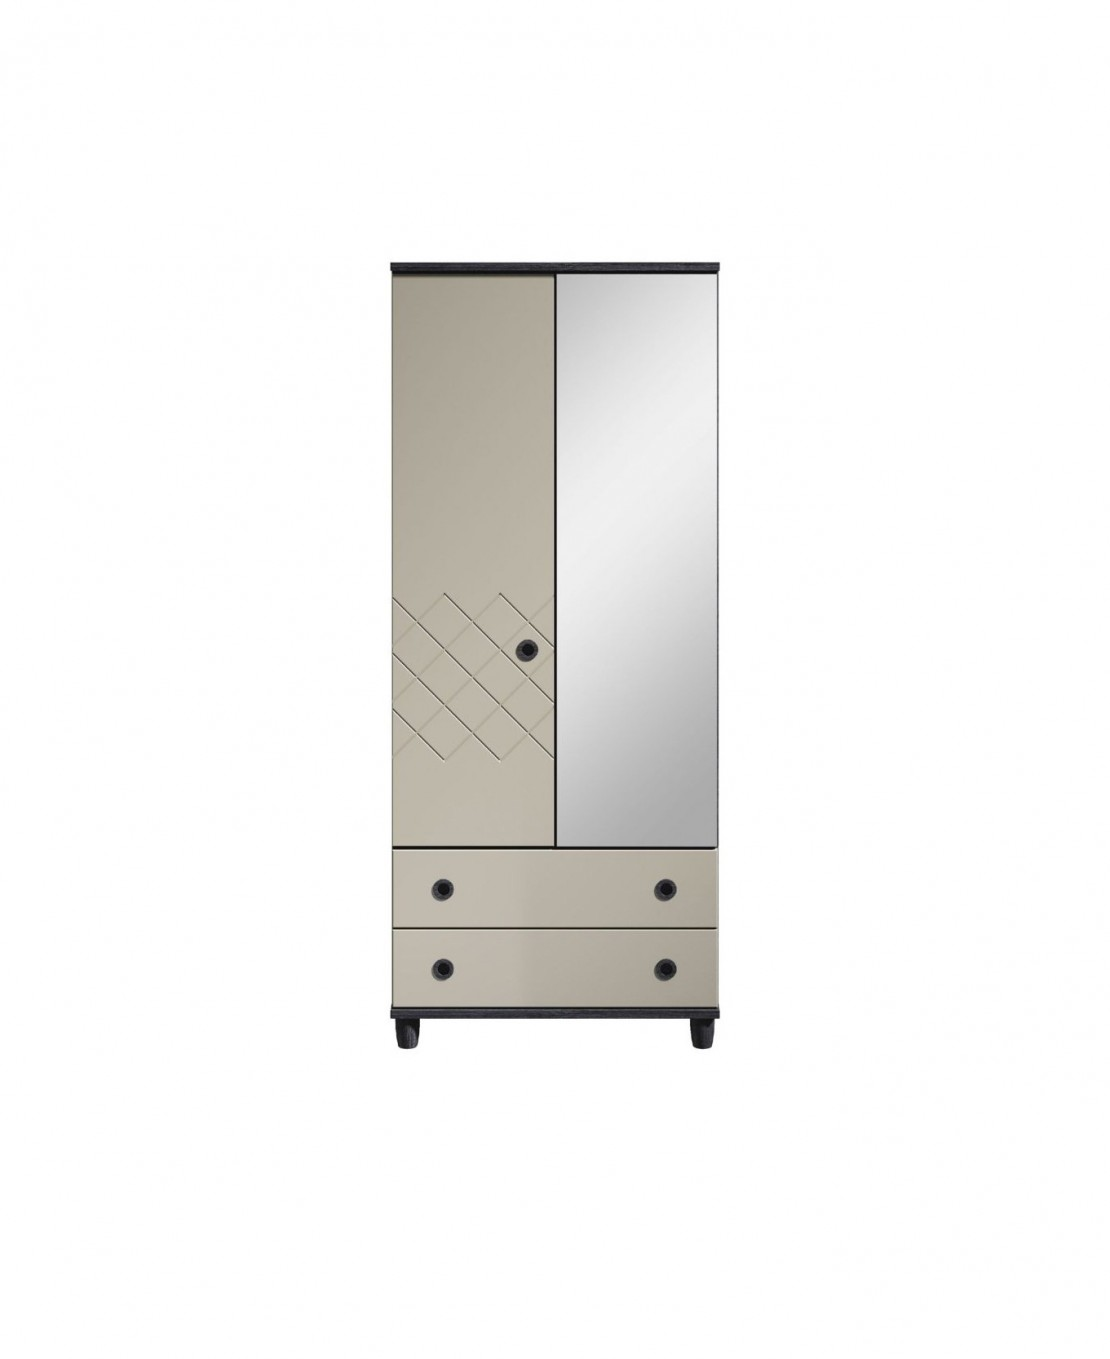 /_images/product-photos/kt-furniture-geo-2-door-mirrored-gents-robe-matt-grey-with-black-oak-carcas-a.jpg